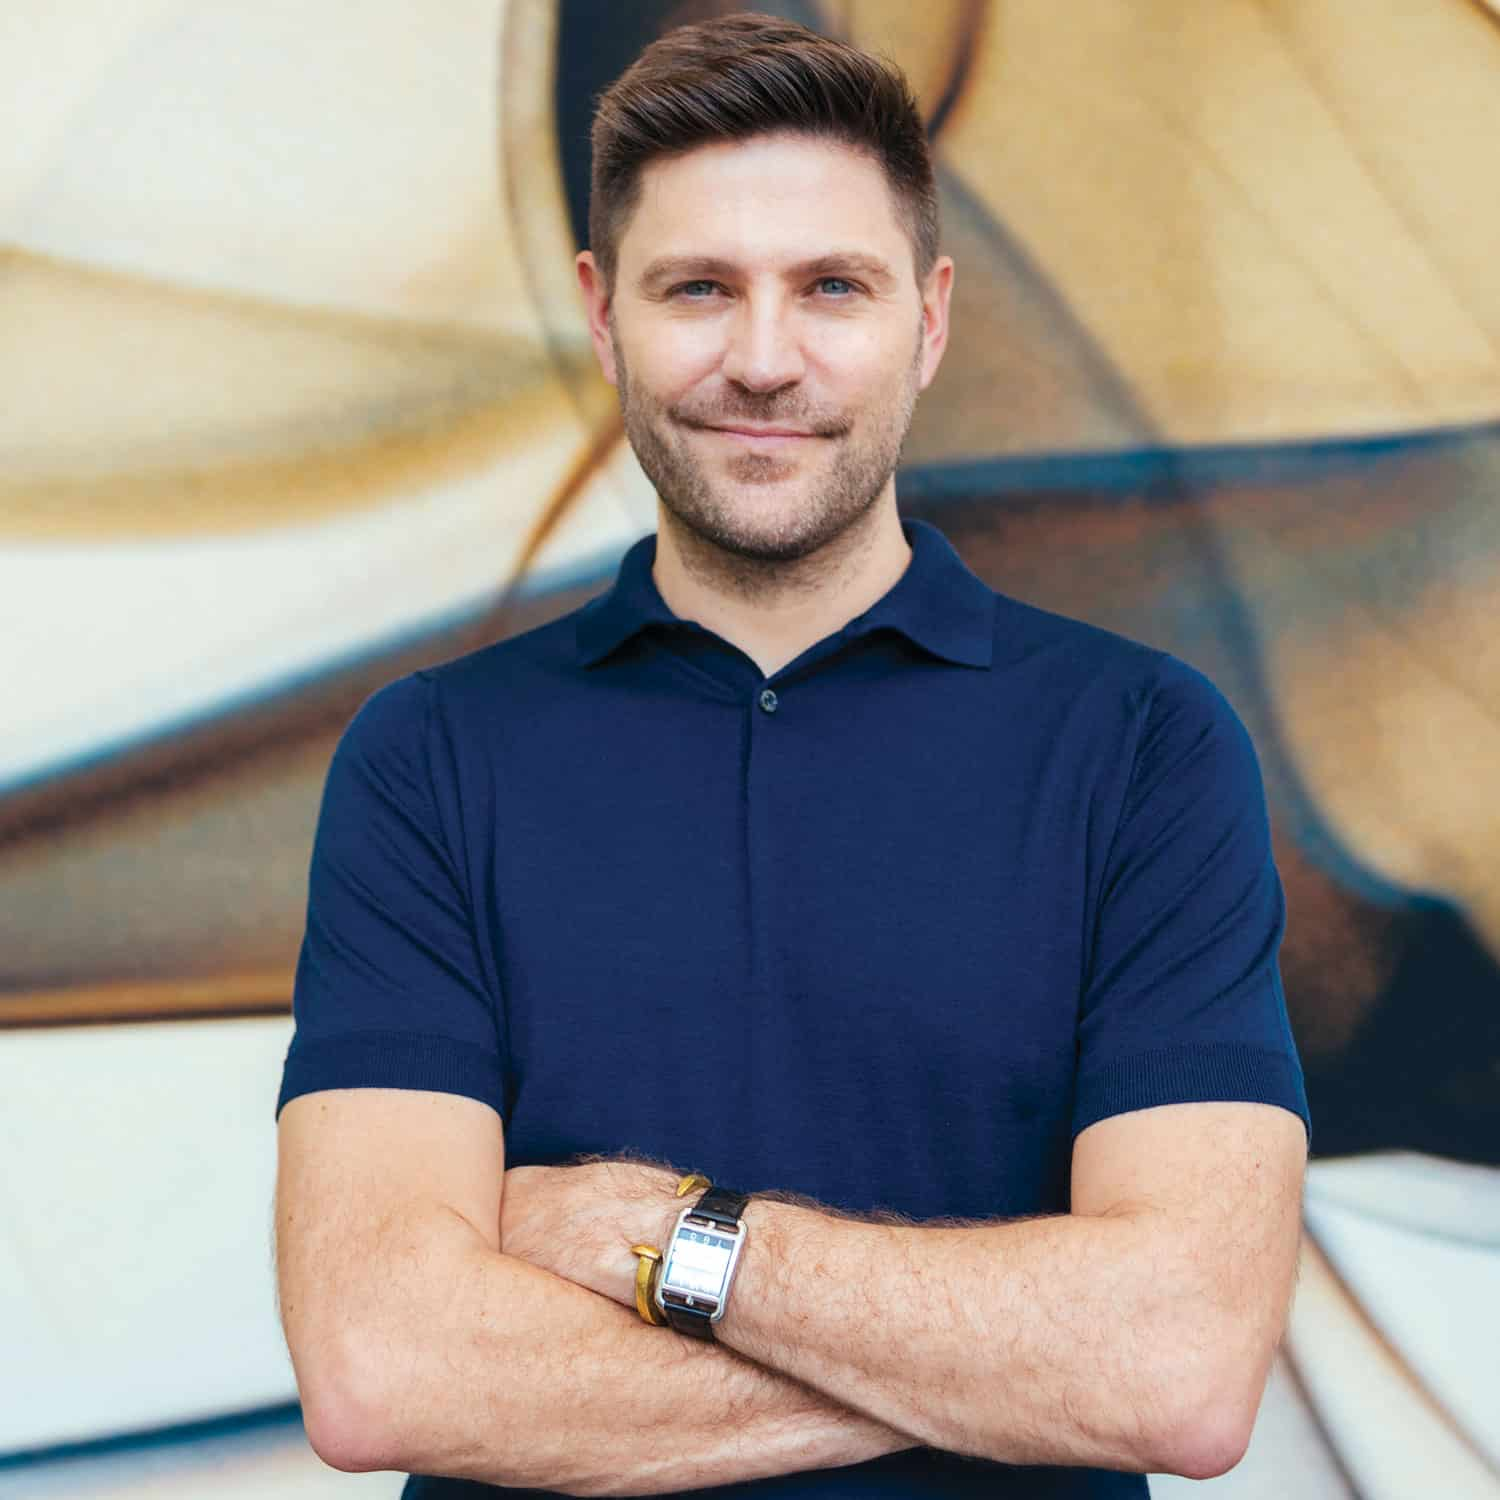 Dan Wakeford on his New Role as Editor in Chief of People